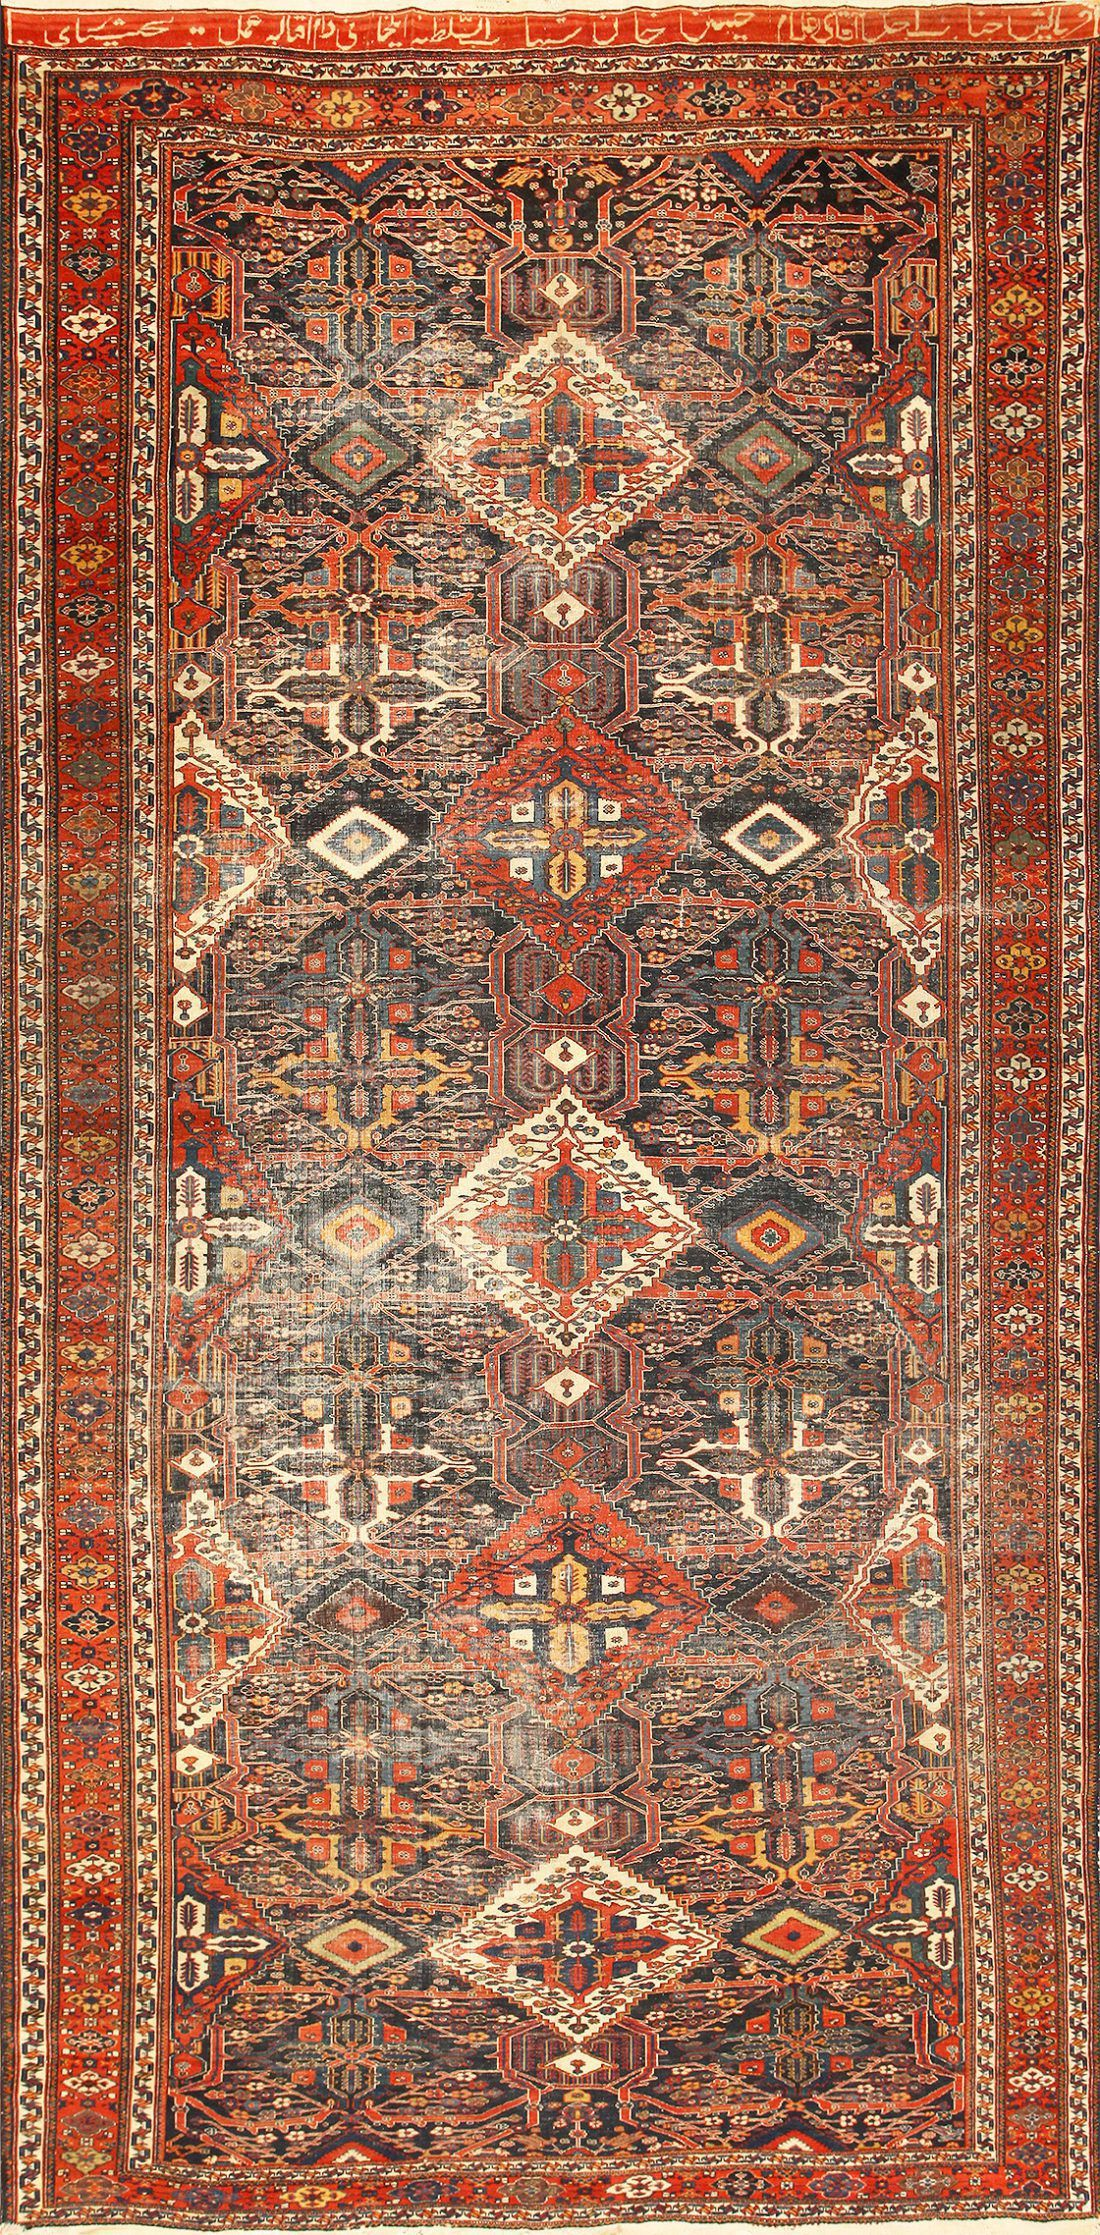 Auktionshaus Henrys Teppiche Antique Gallery Tribal Persian Bakhtiari Shabby Chic Rug